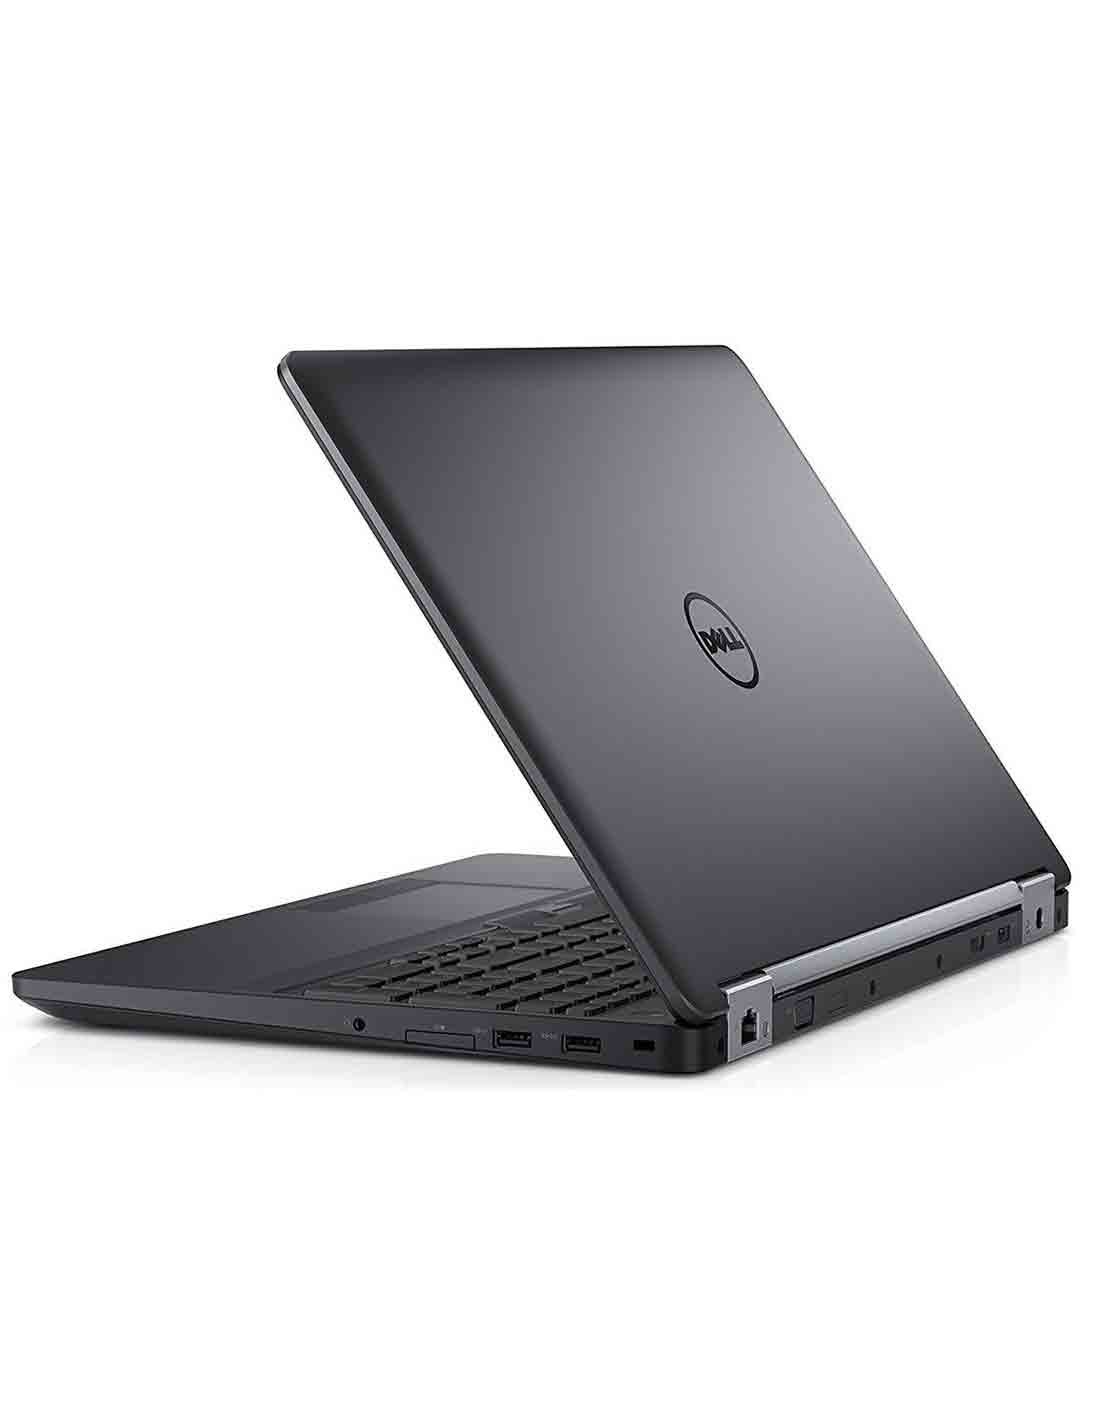 Dell Latitude E5570 Core i5 Business Laptop Images and Pictures